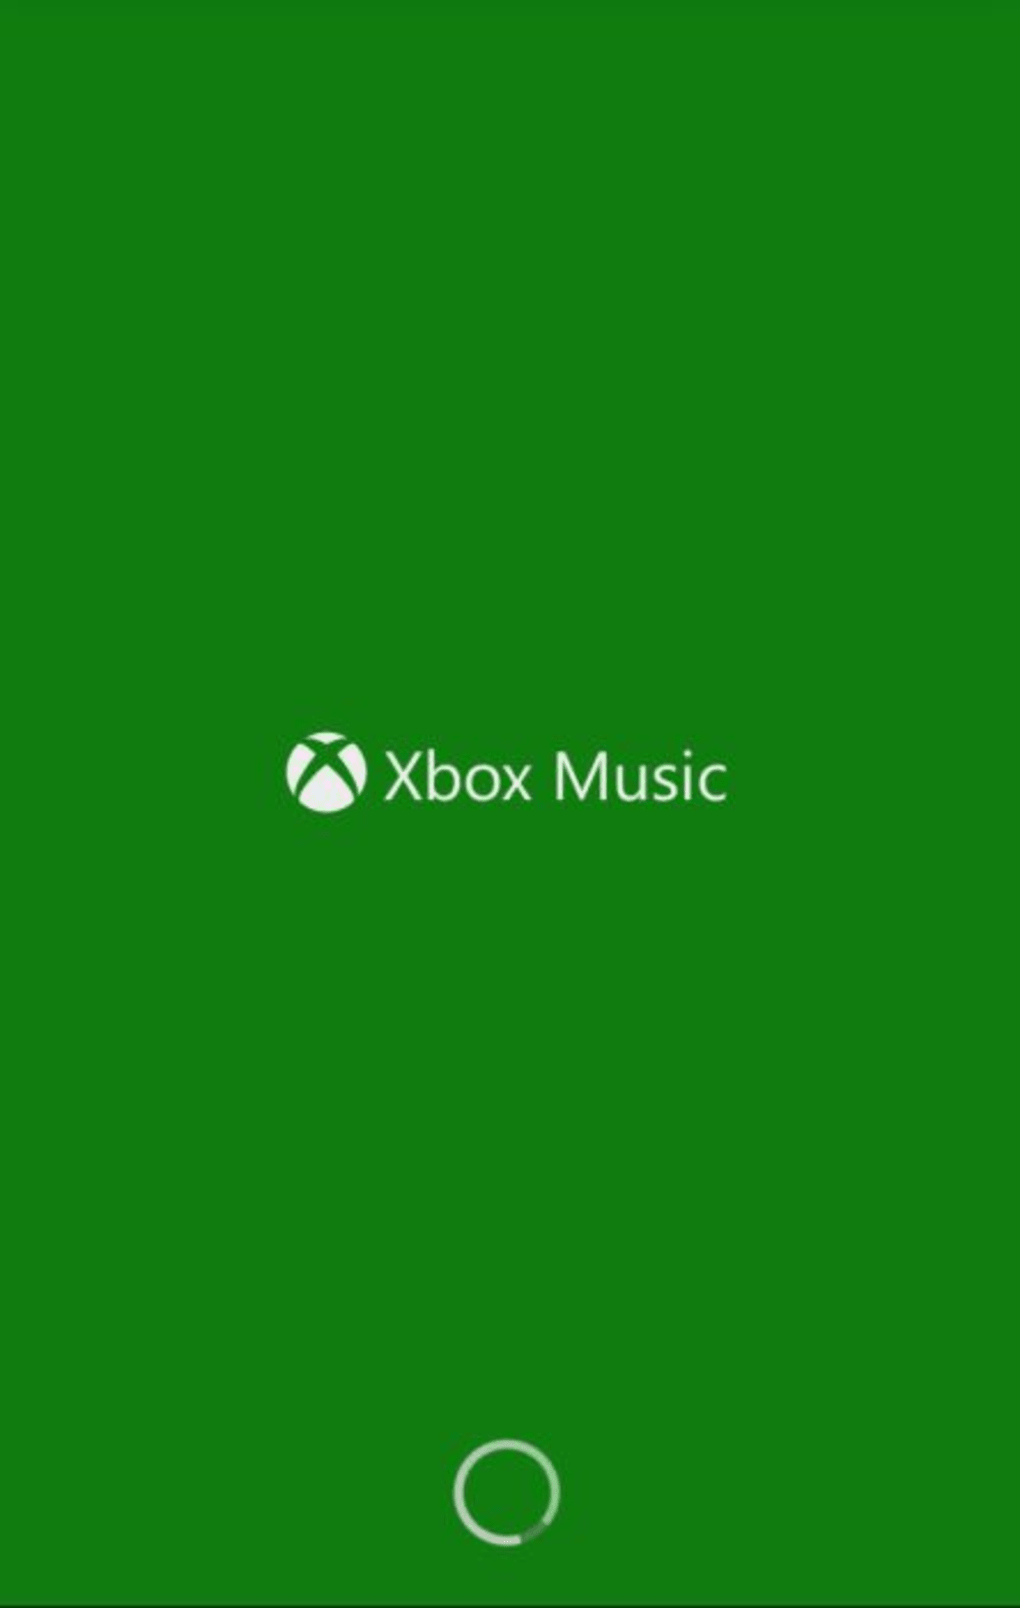 Xbox Music for Android - Download